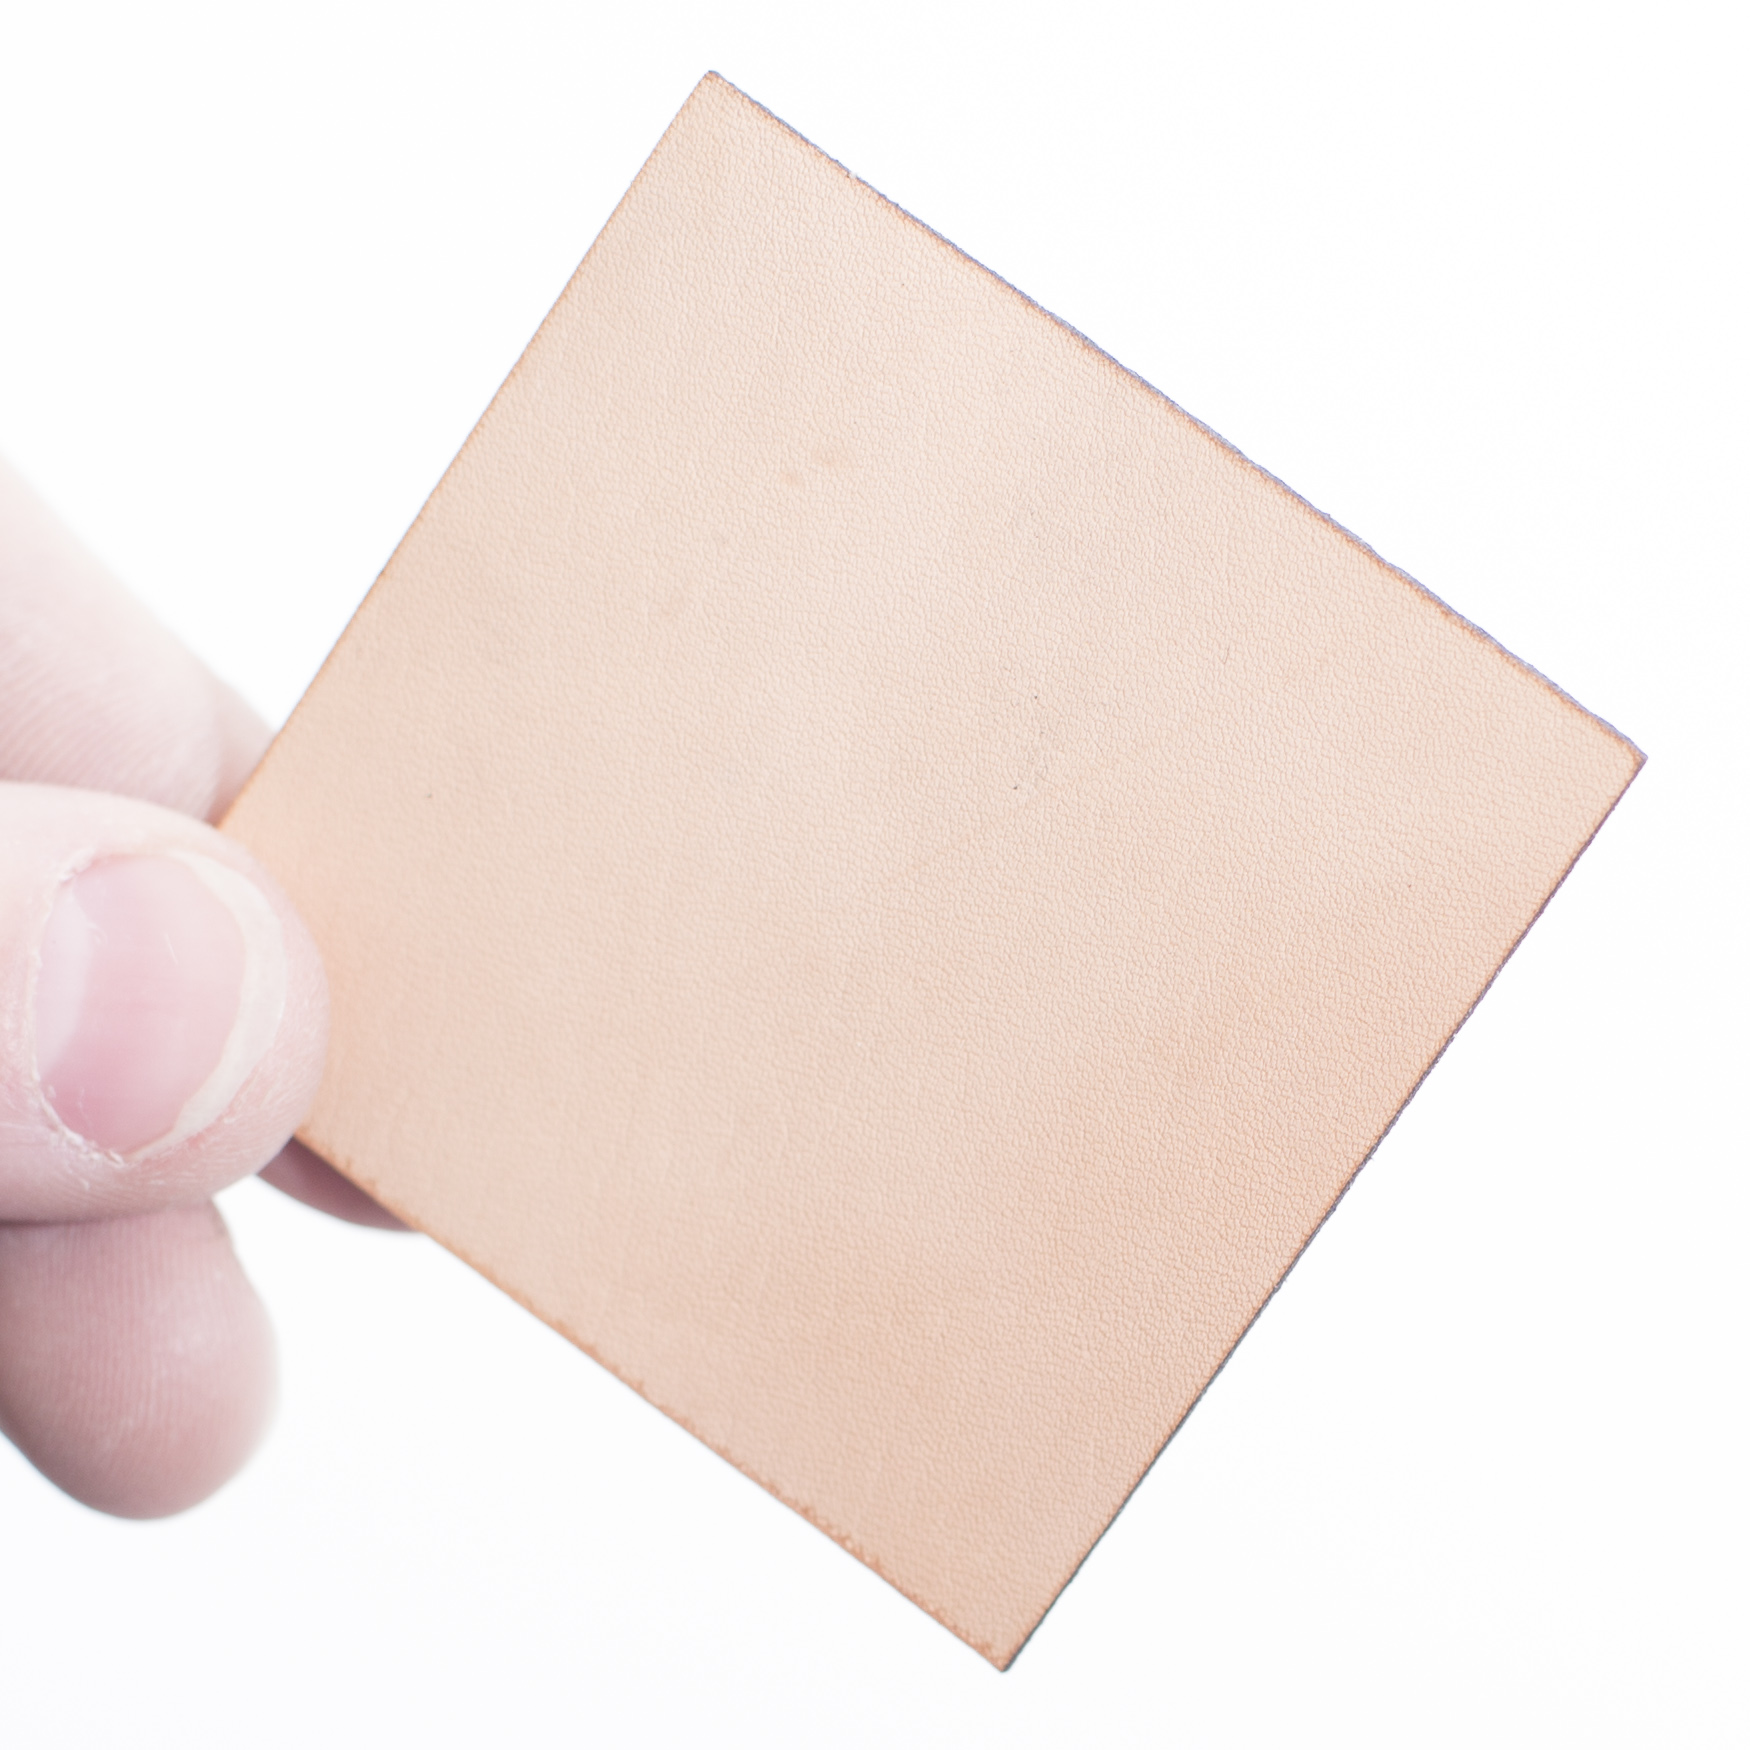 Leather Sheet or Hide sample for laser cutting or laser etch or engraved pieces